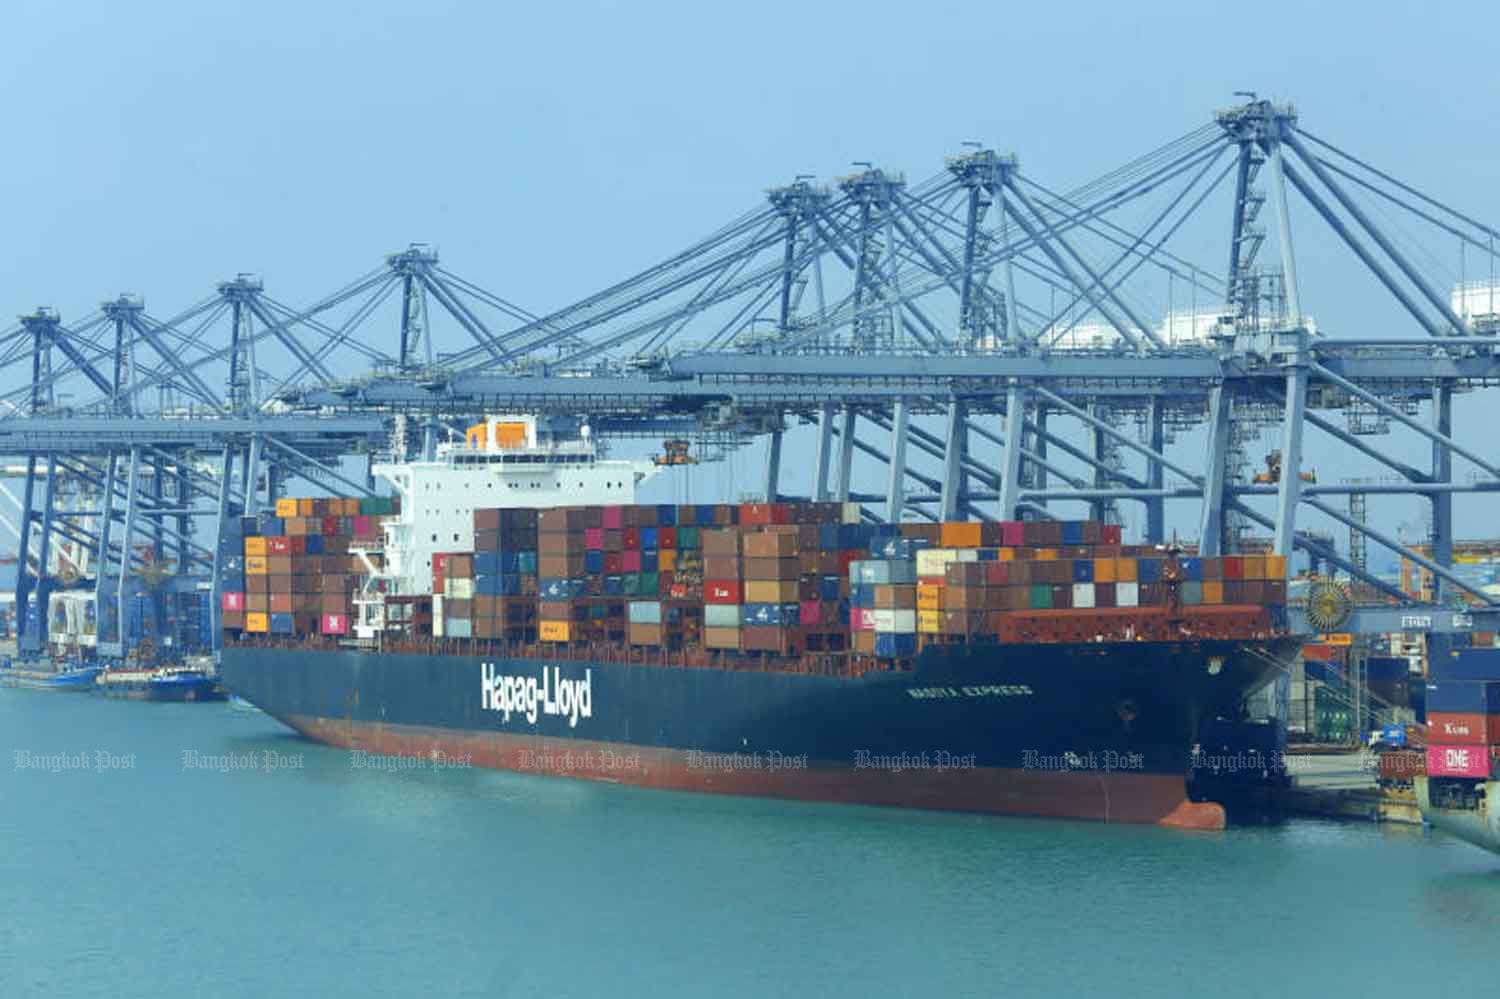 A cargo vessel loaded with containers is docked at Laem  Chabang port in Chon Buri province.